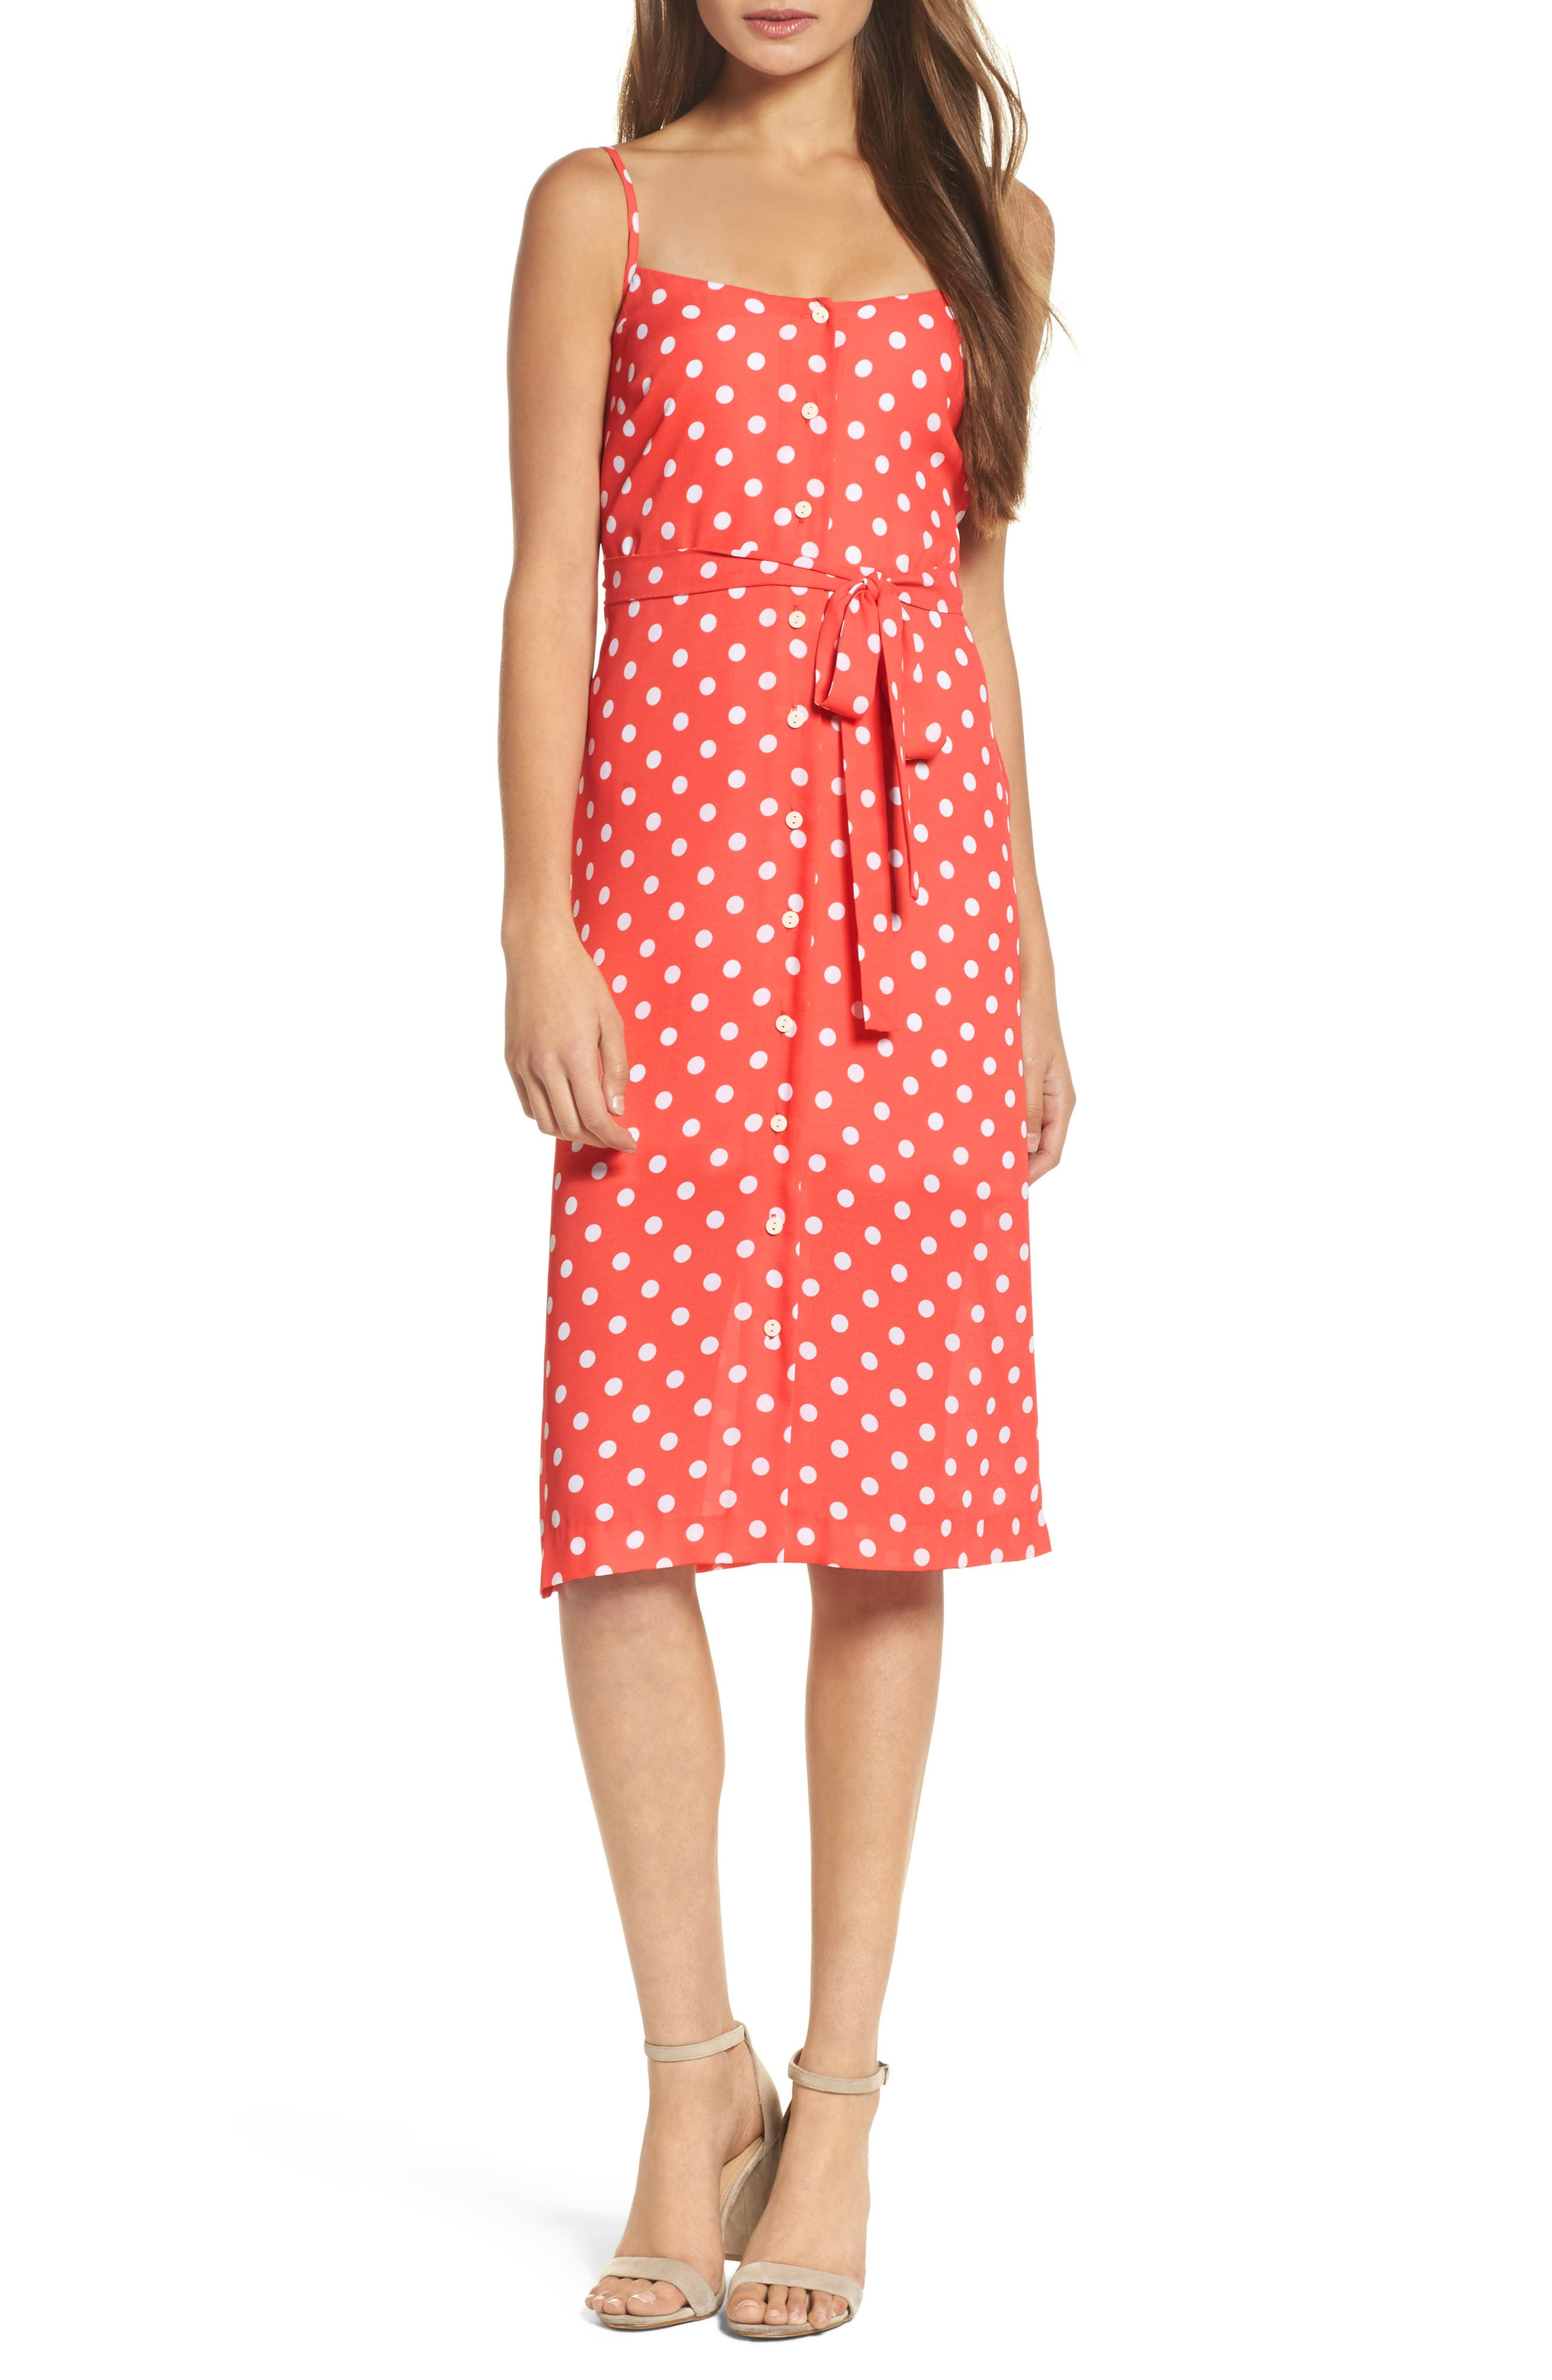 Flower Frolicking Midi Dress,                         Main,                         color, Coral Polka Dot